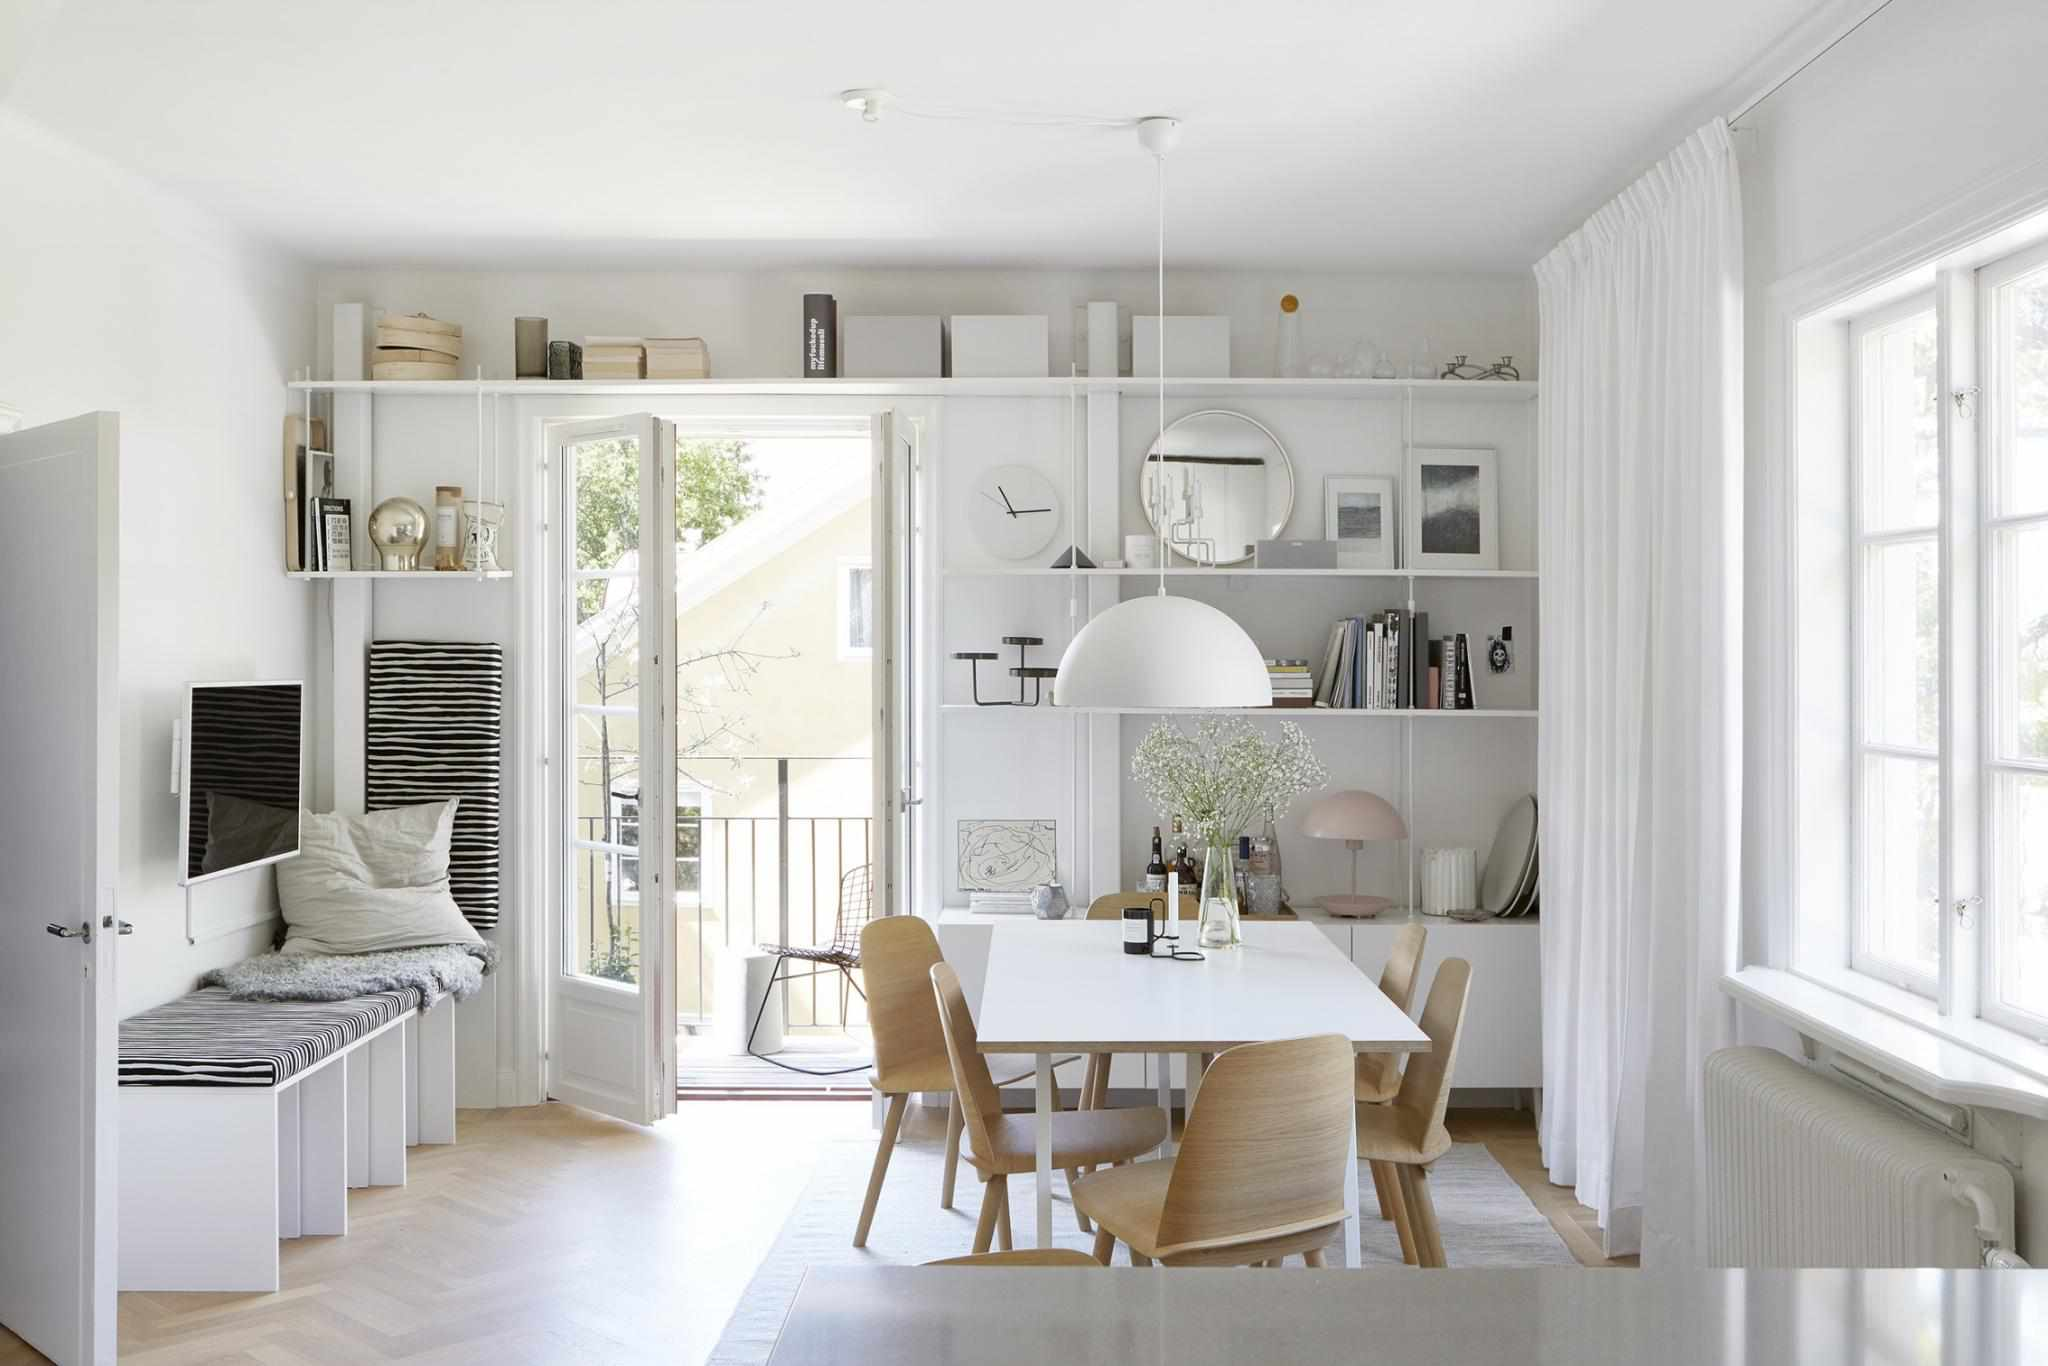 How to Make the Most of a Tiny Apartment